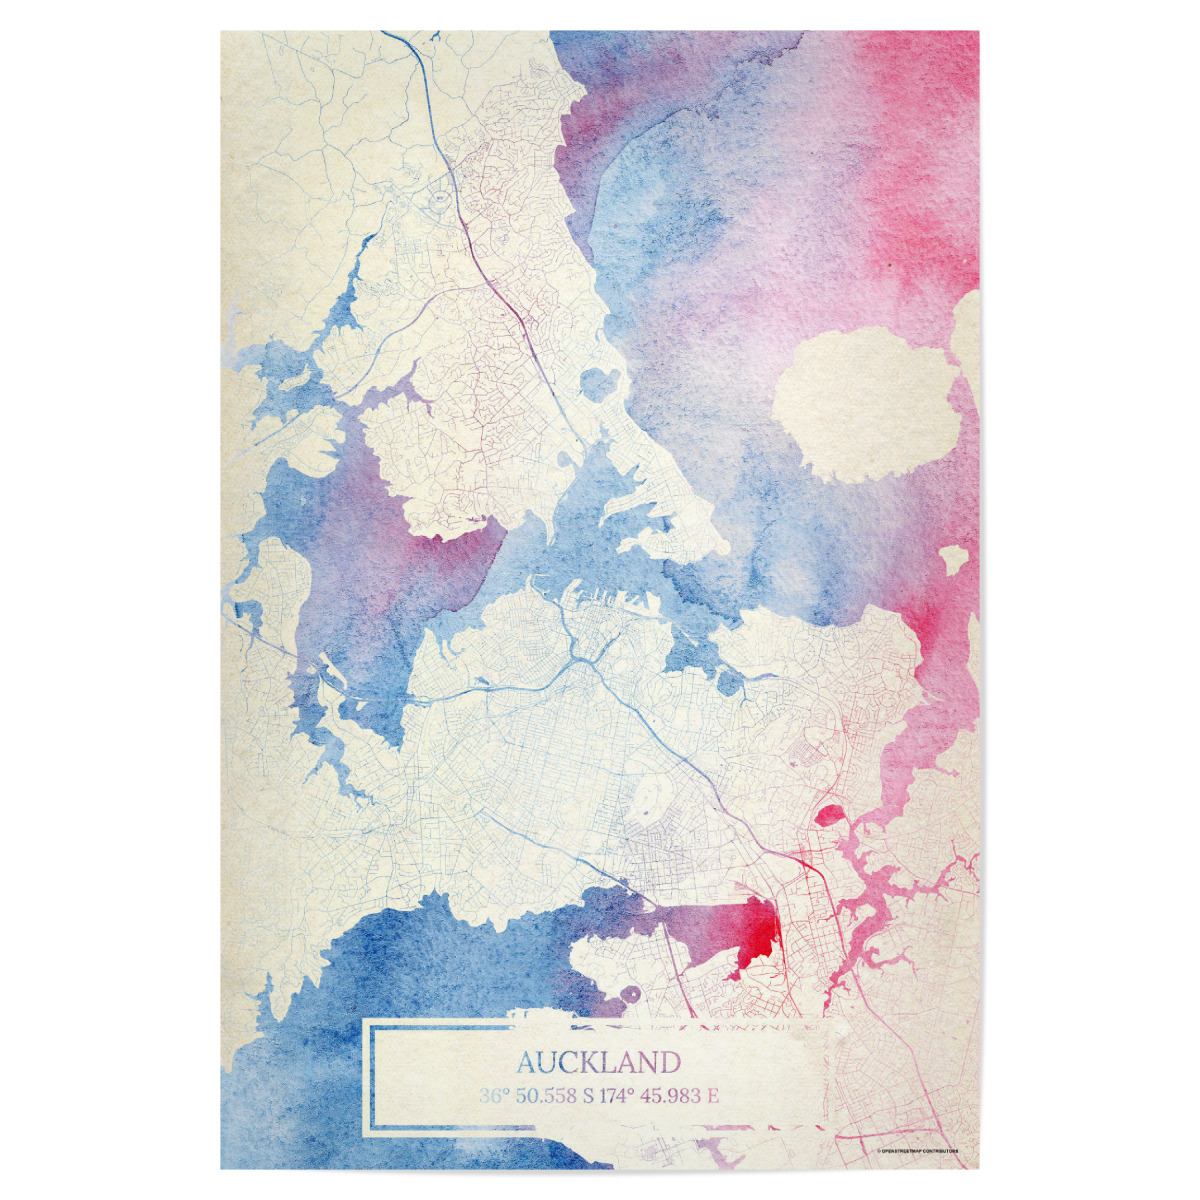 Auckland Neuseeland Map Rose And Serenity I als Poster bei ...